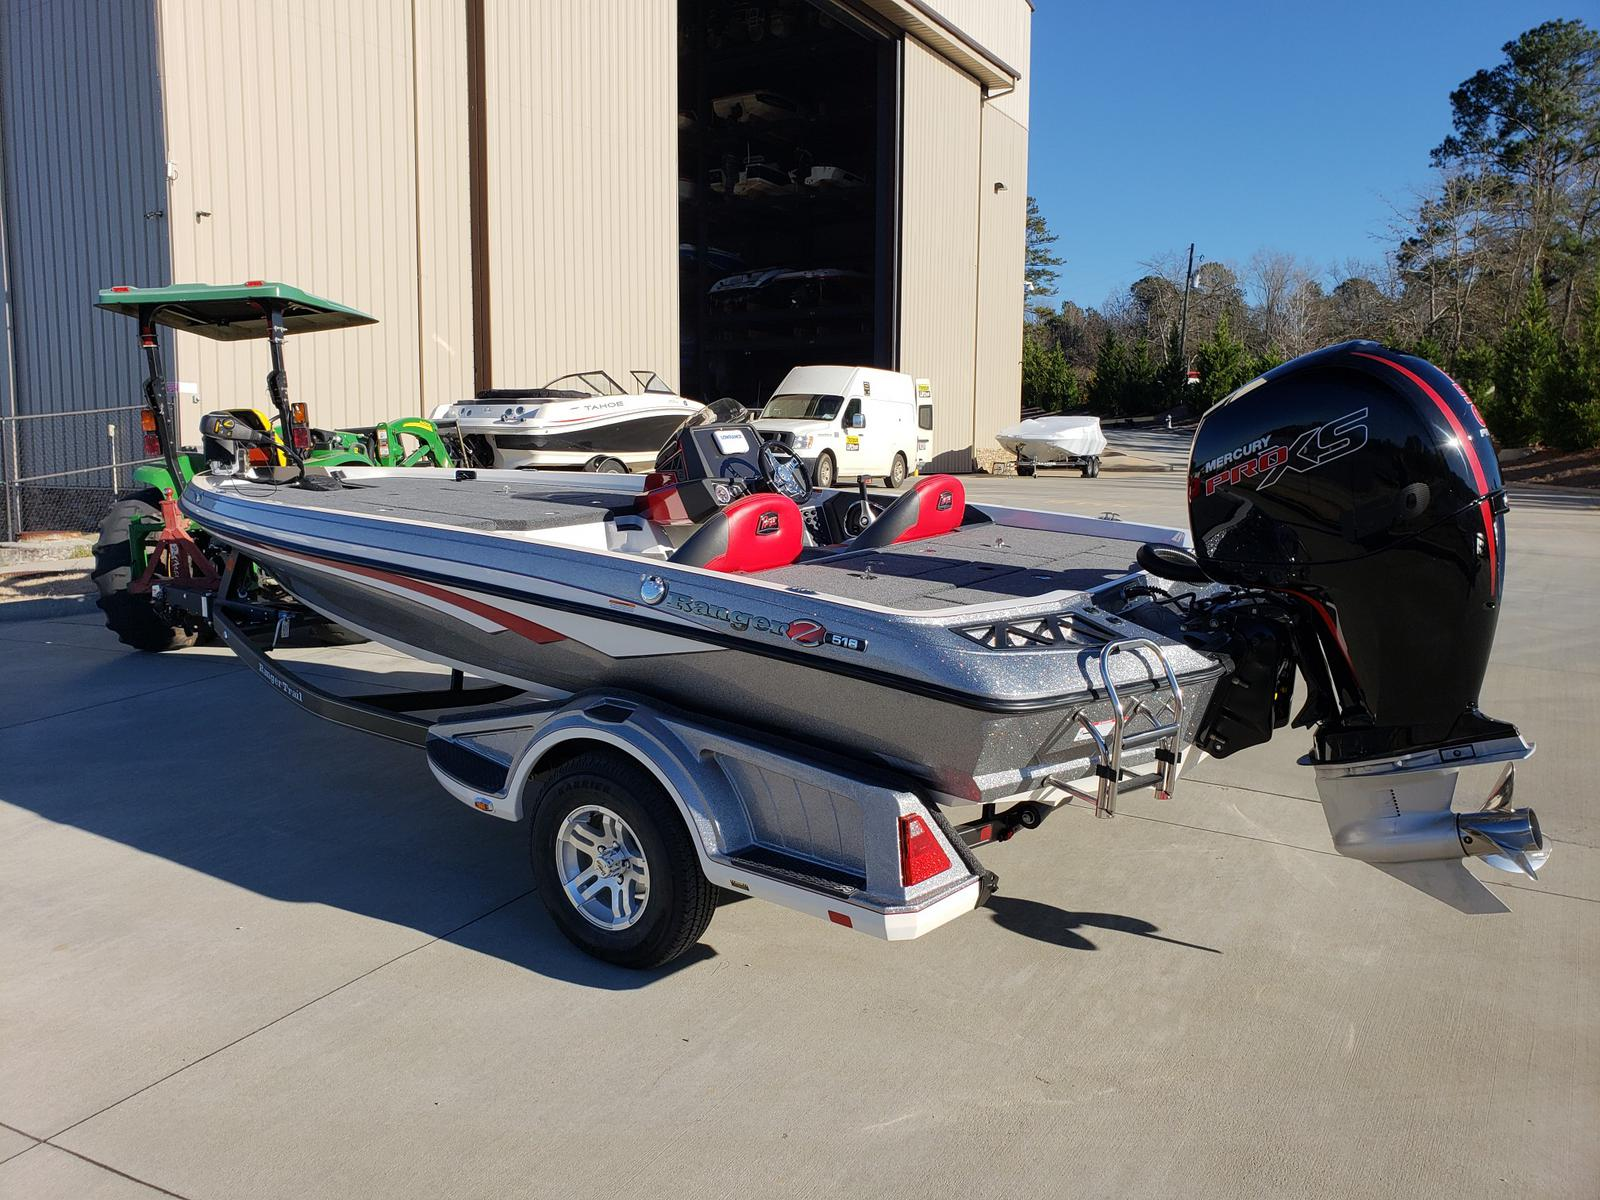 2019 Ranger Boats boat for sale, model of the boat is Z518 & Image # 31 of 31